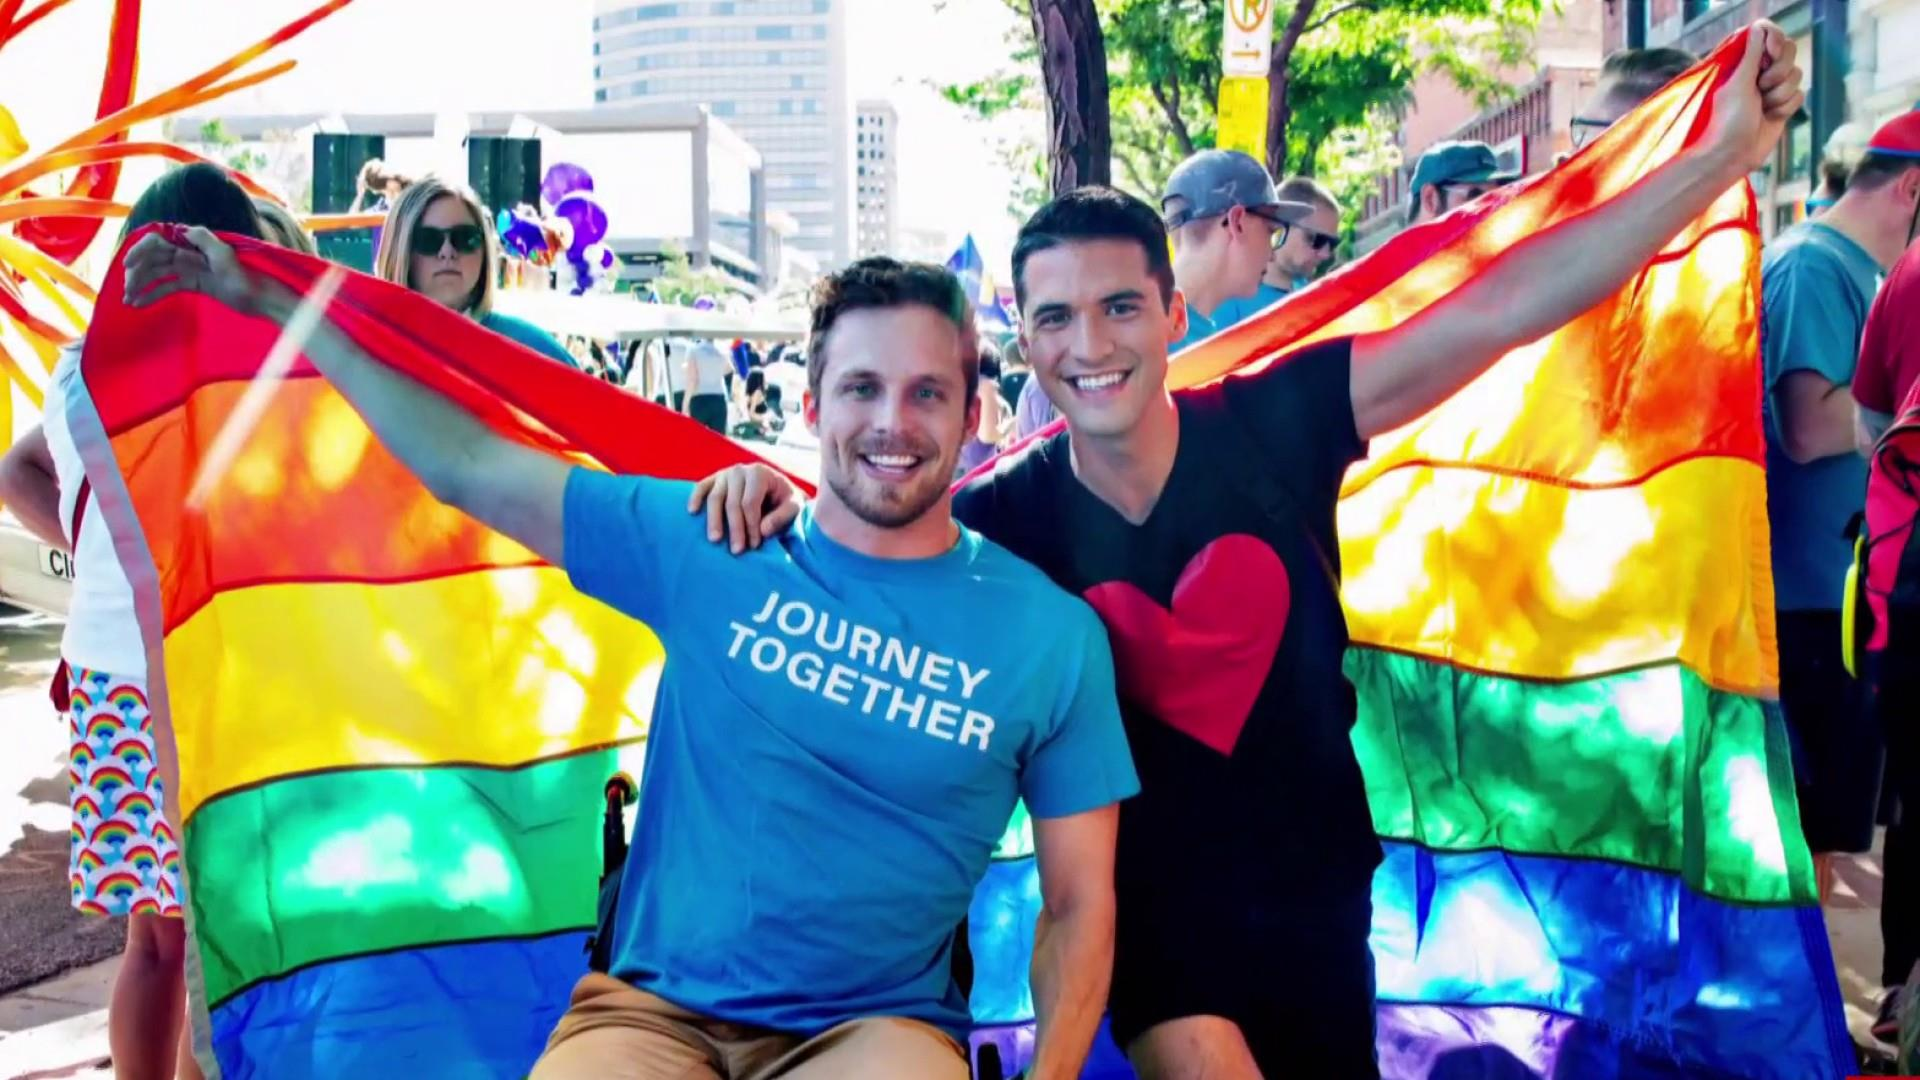 LGBT life in small towns highlighted in 'State of Pride'